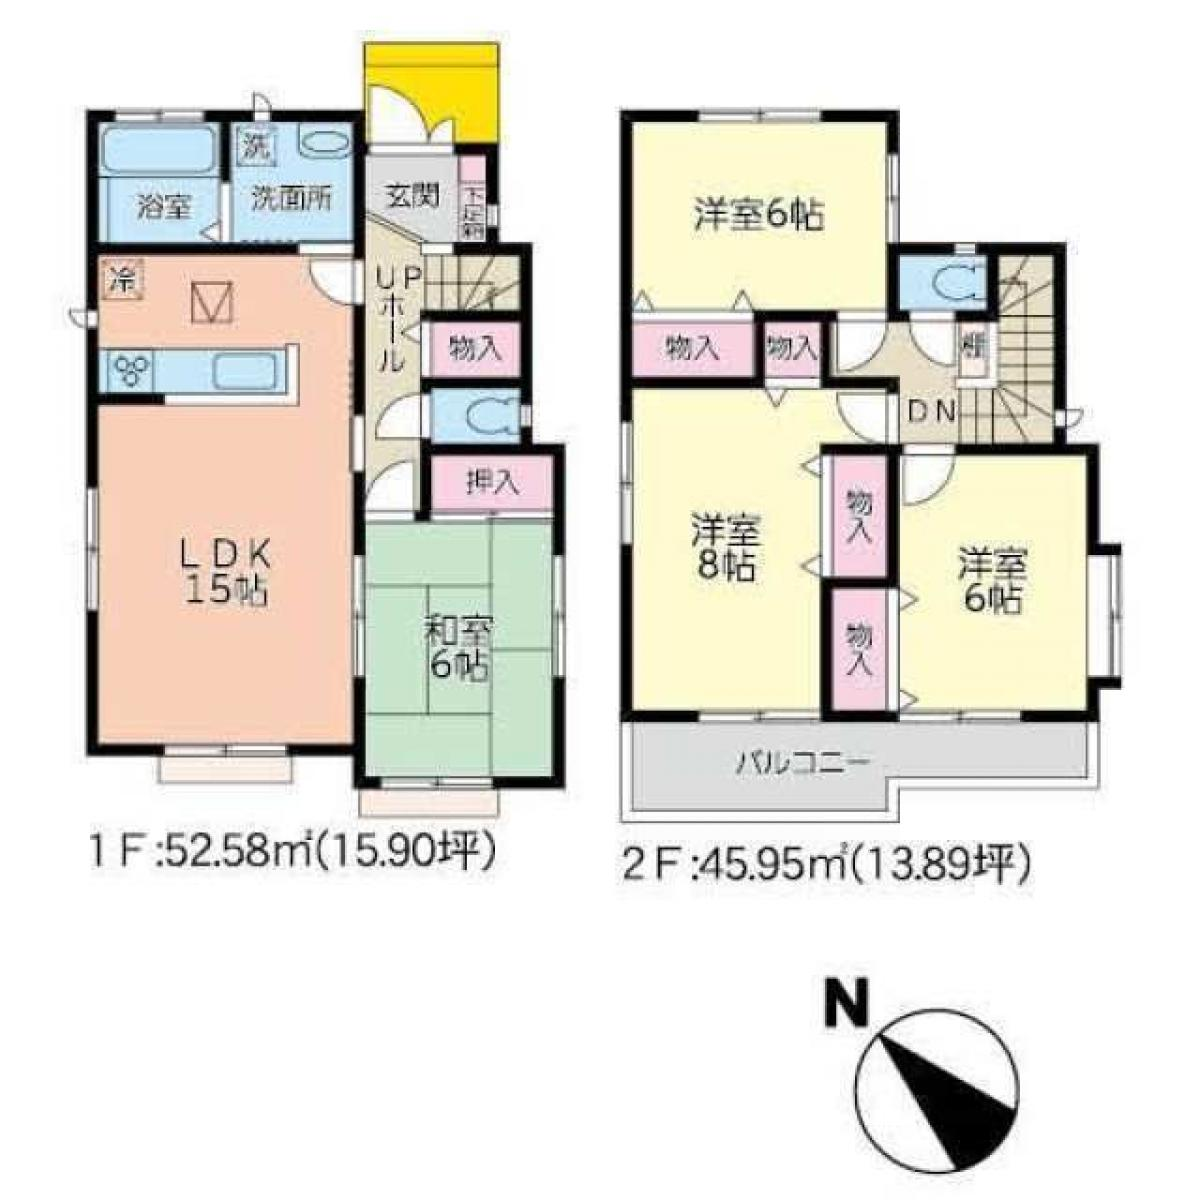 Property listed For Sale in Hino Shi, Japan